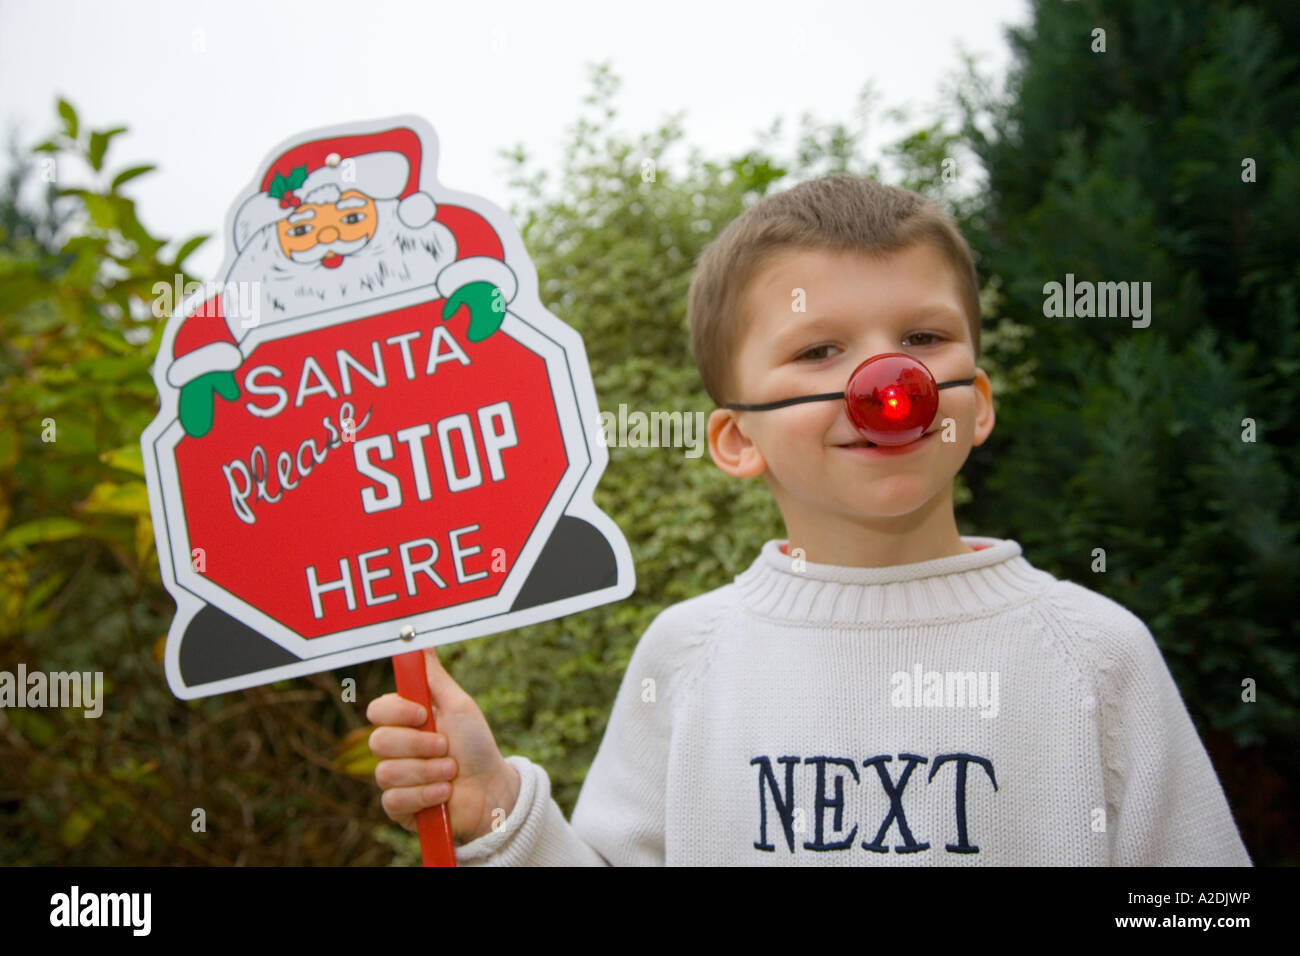 Young boy wearing next jumper holding placard ' Santa please Stop here' Stock Photo